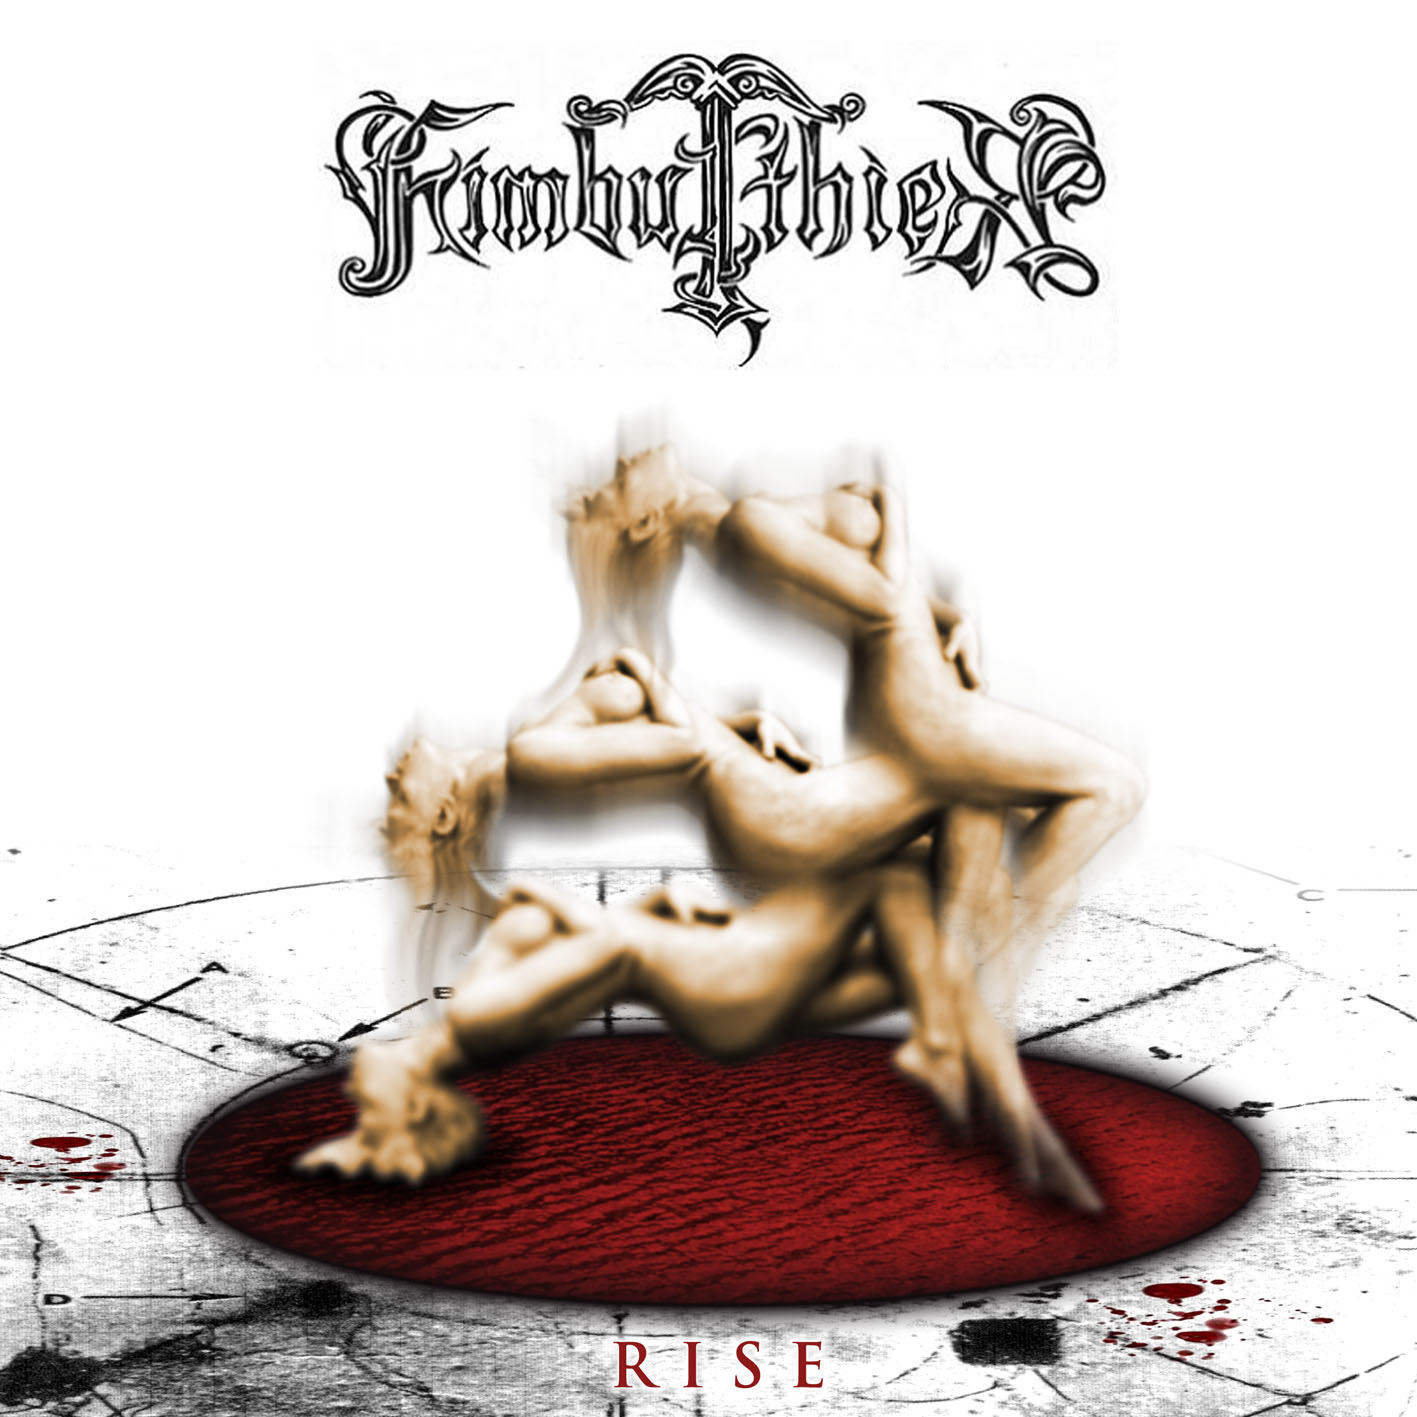 Fimbulthier – Arise Review